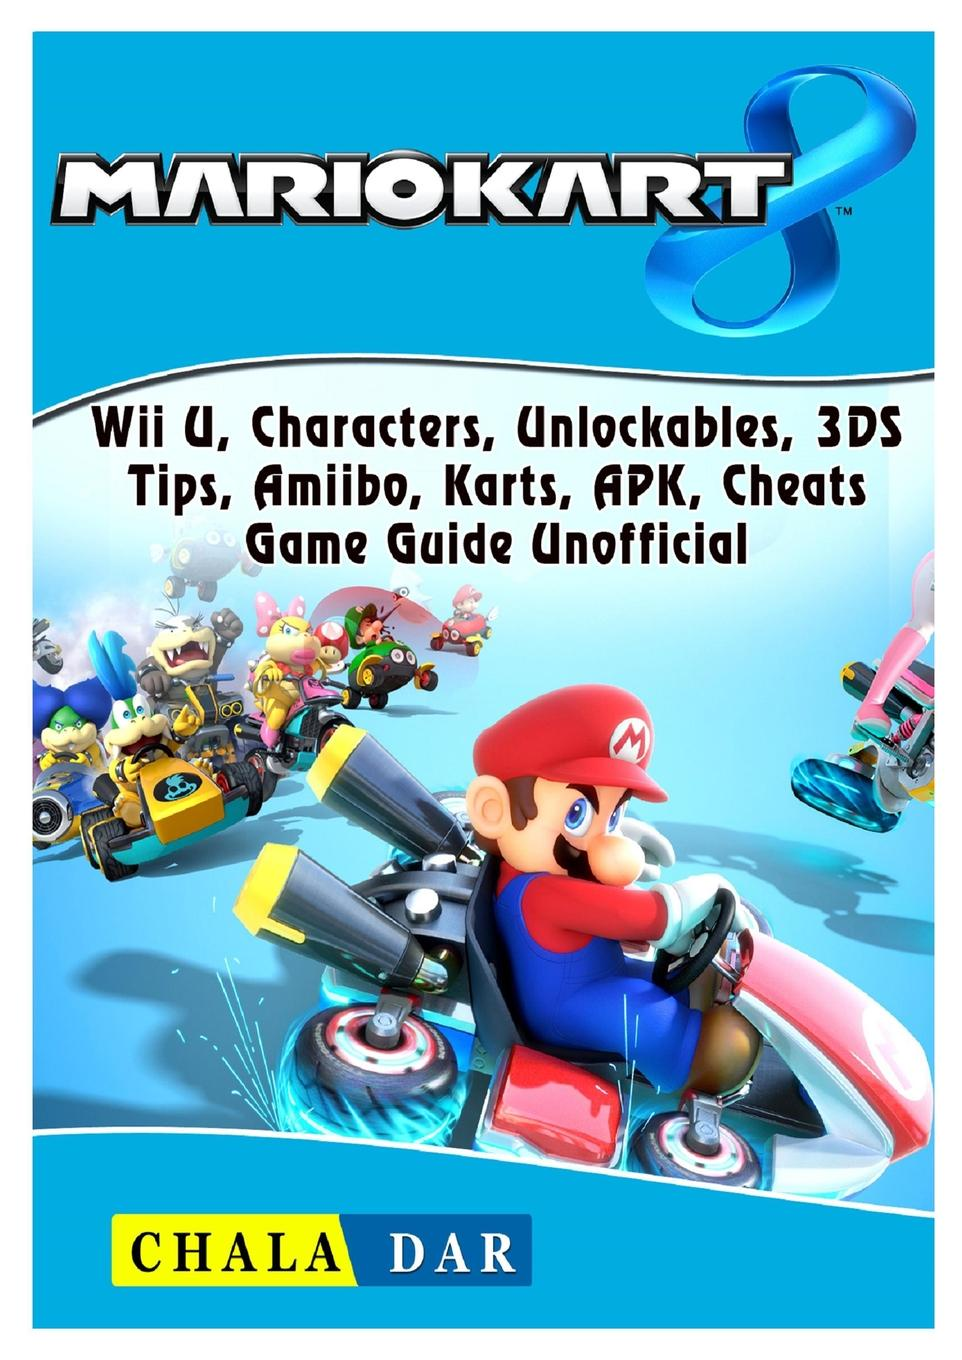 Chala Dar Mario Kart 8, Wii U, Characters, Unlockables, 3DS, Tips, Amiibo, Karts, APK, Cheats, Game Guide Unofficial advanced game controller for gamecube ngc and wii black